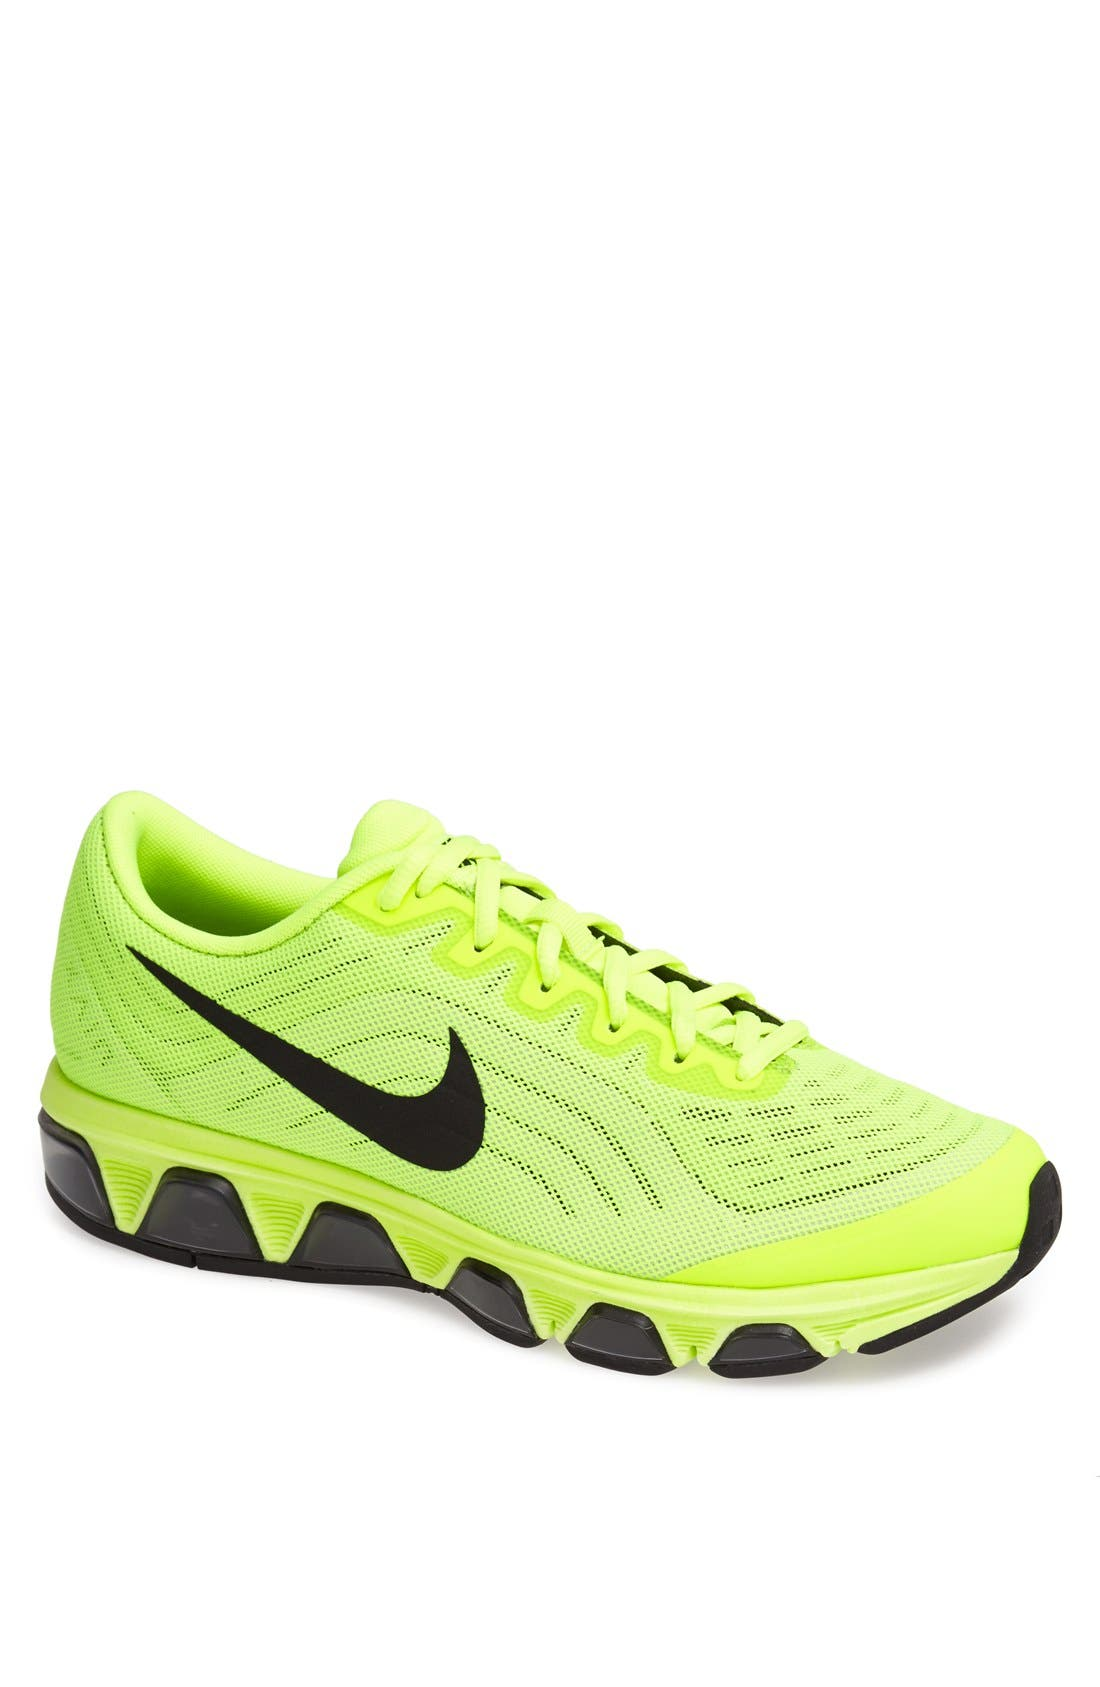 'Air Max Tailwind 6' Running Shoe,                         Main,                         color, Volt/ Black/ Barely Volt